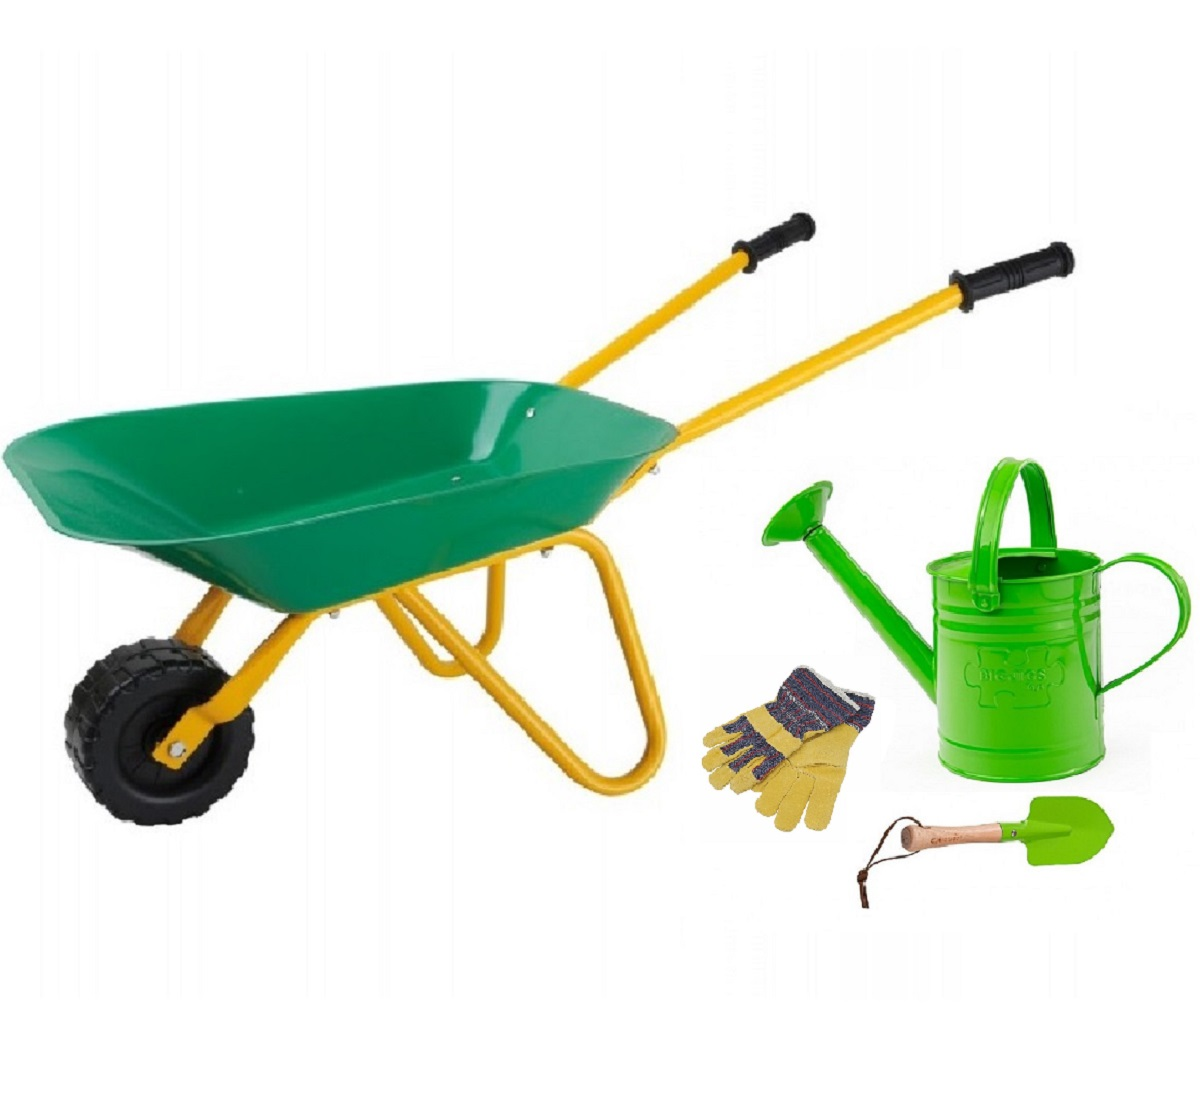 Children 39 s gardening tools watering can wheelbarrow set for Gardening tools toddlers